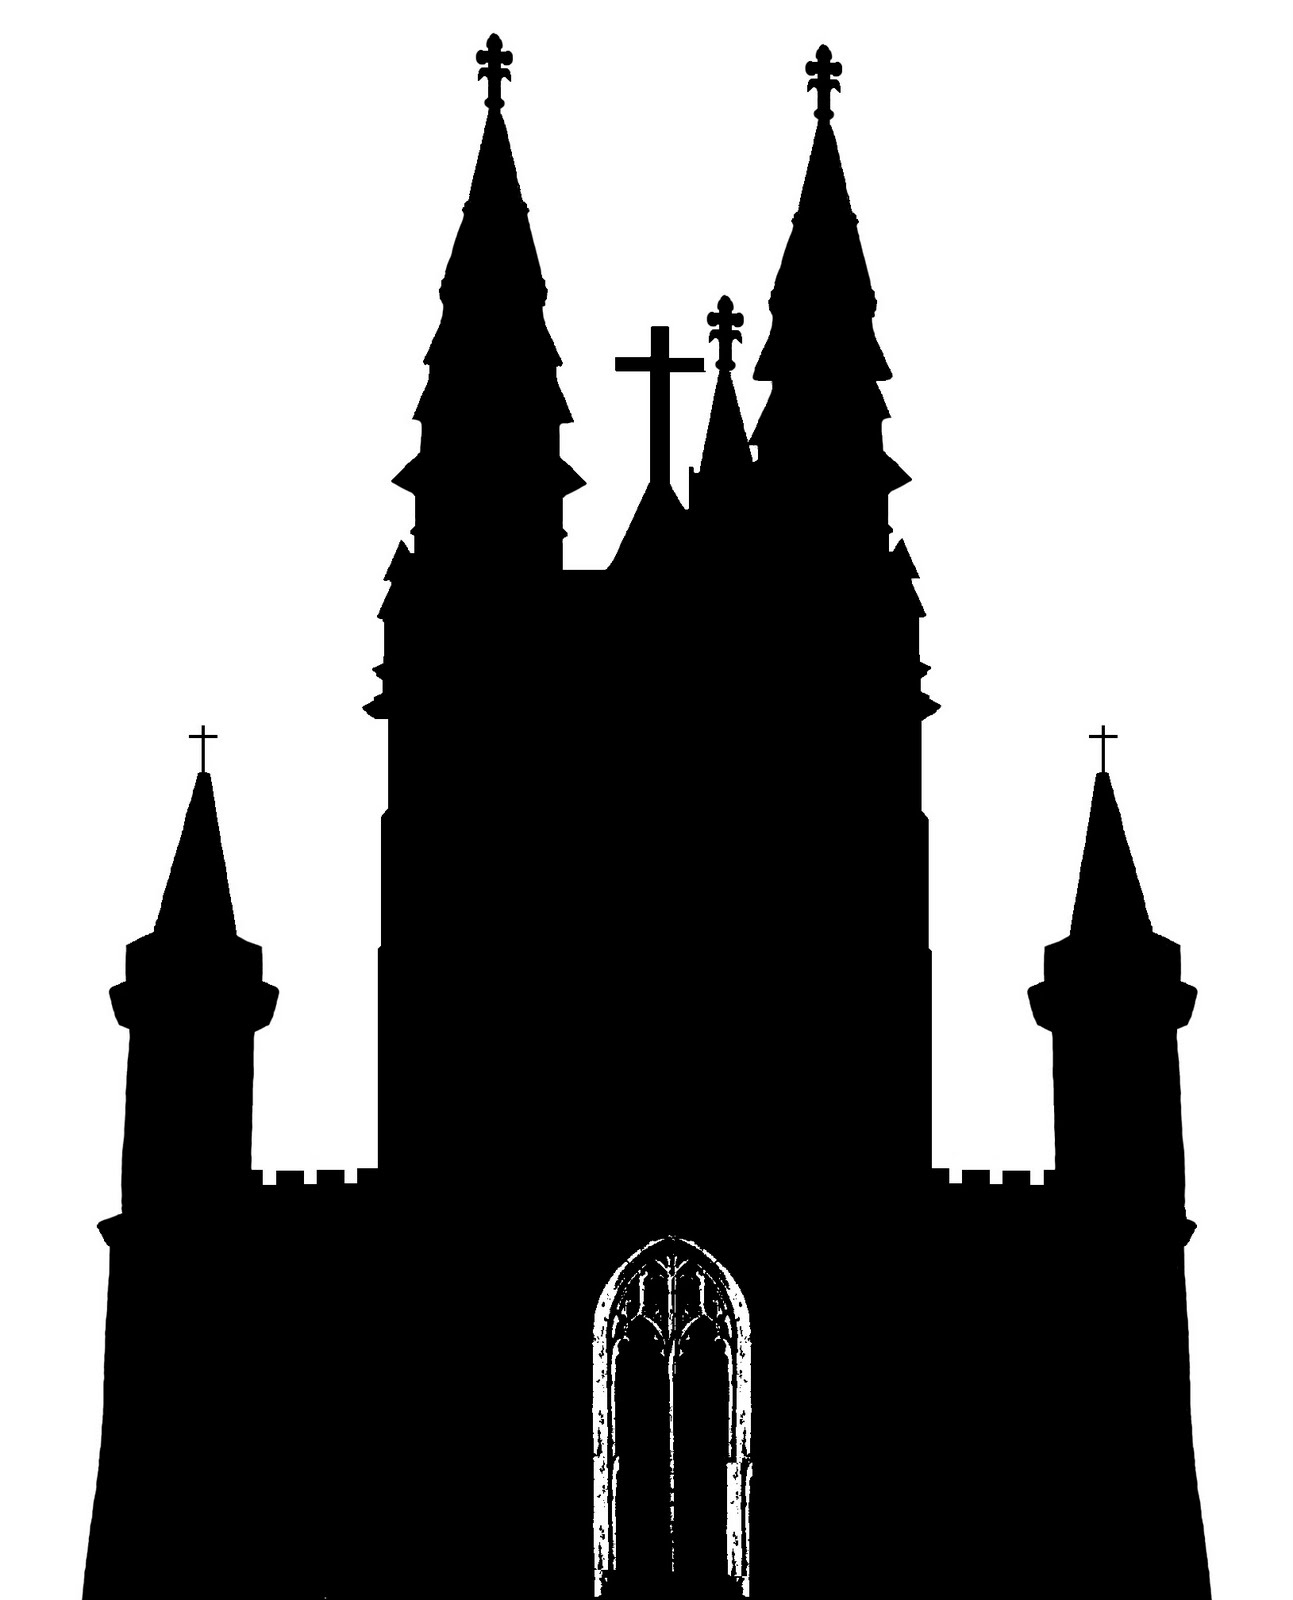 Silhouette of a steeple clipart.